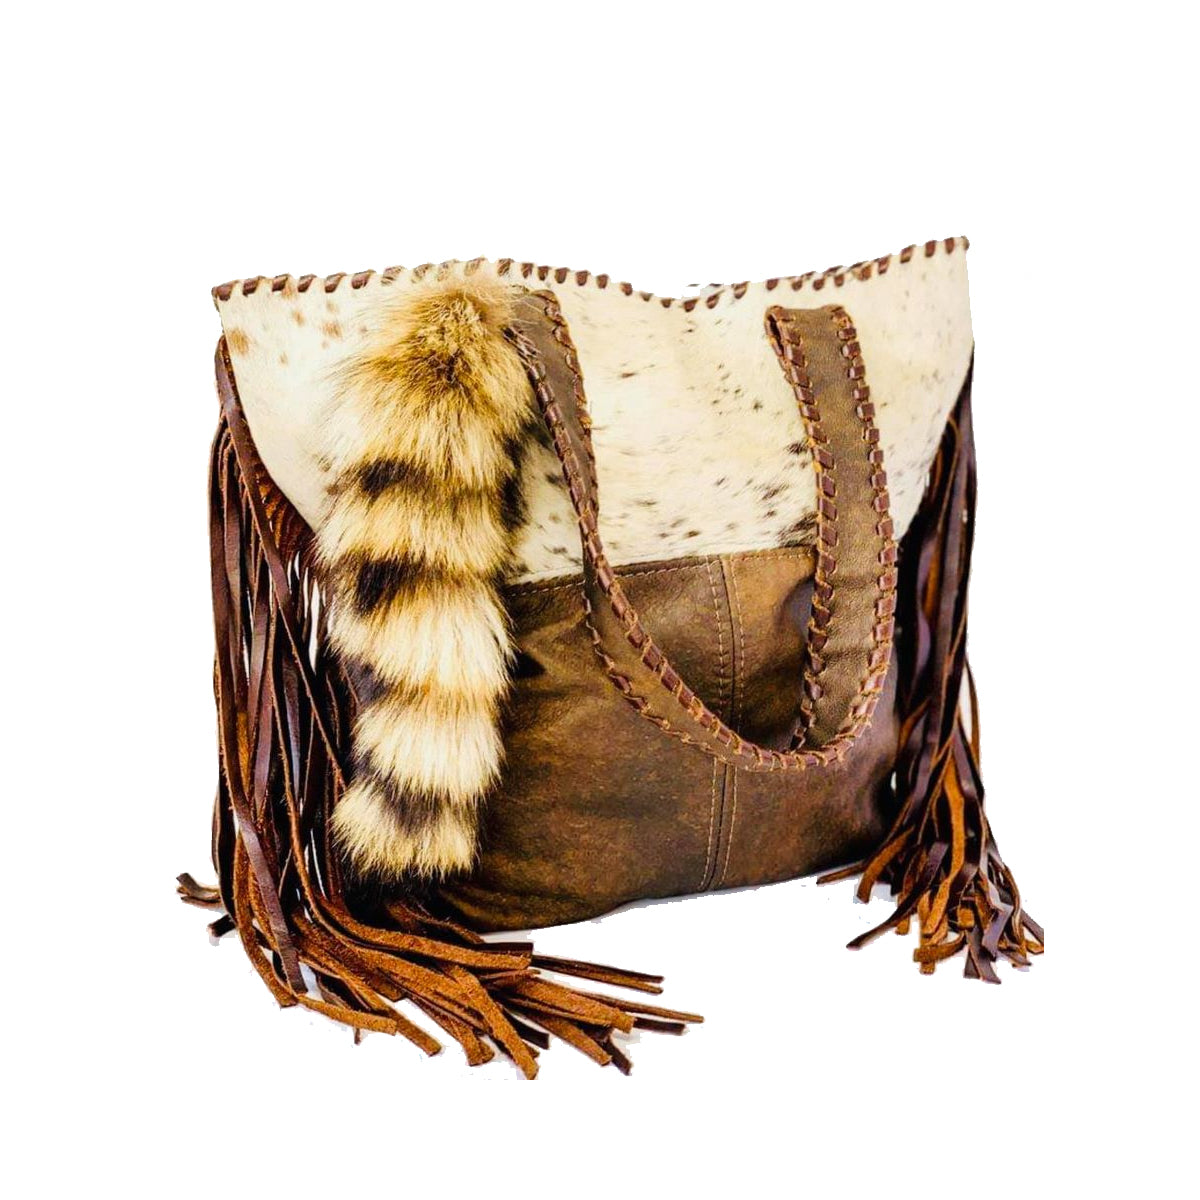 Rusty Diamond Designs Cowhide Shoulder Bag with Coon Tail